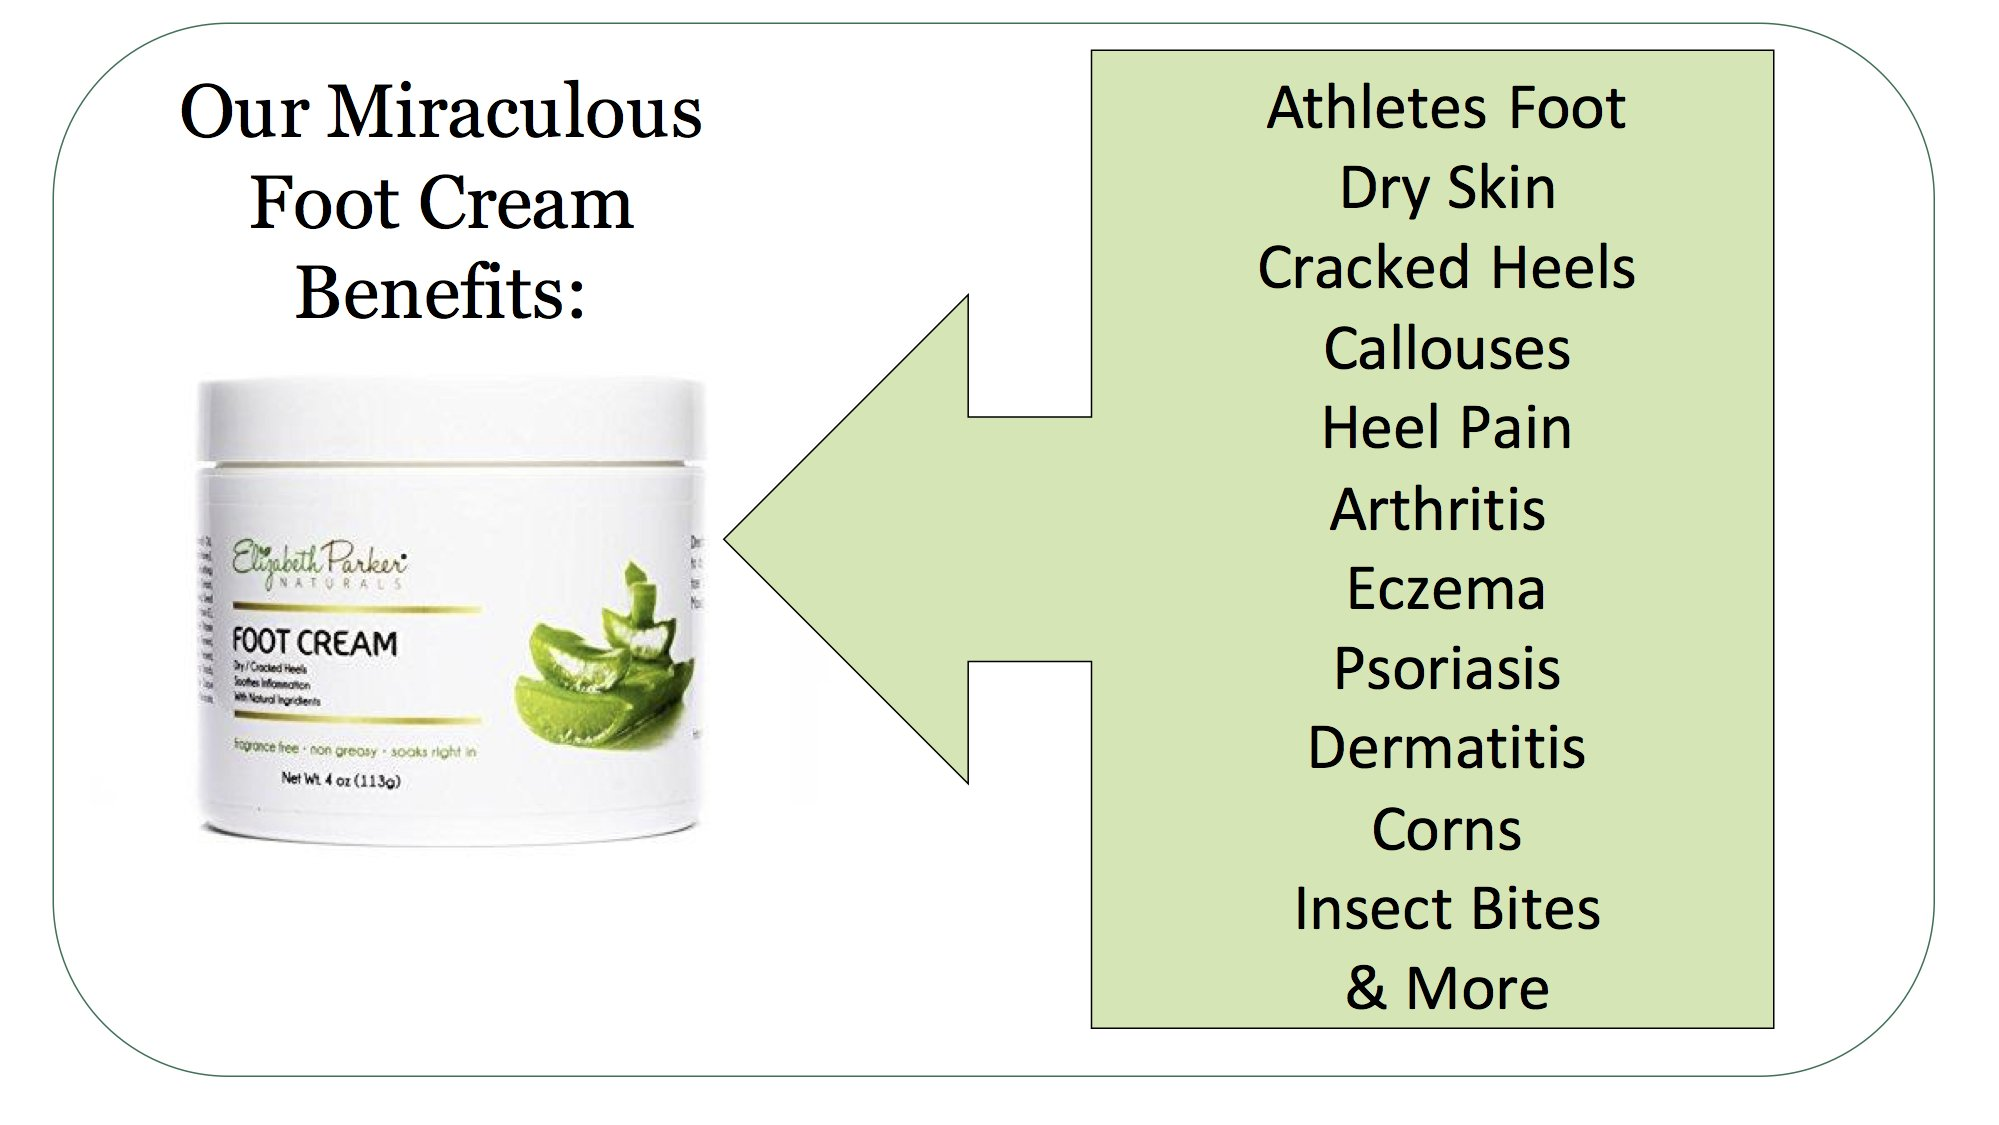 Foot Cream for Dry Cracked Heels and Feet - Anti Fungal for Athletes Foot - Best Foot Callus Remover for Men and Women - Fragrance Free and Non Greasy 2oz by Elizabeth Parker Naturals (Image #2)